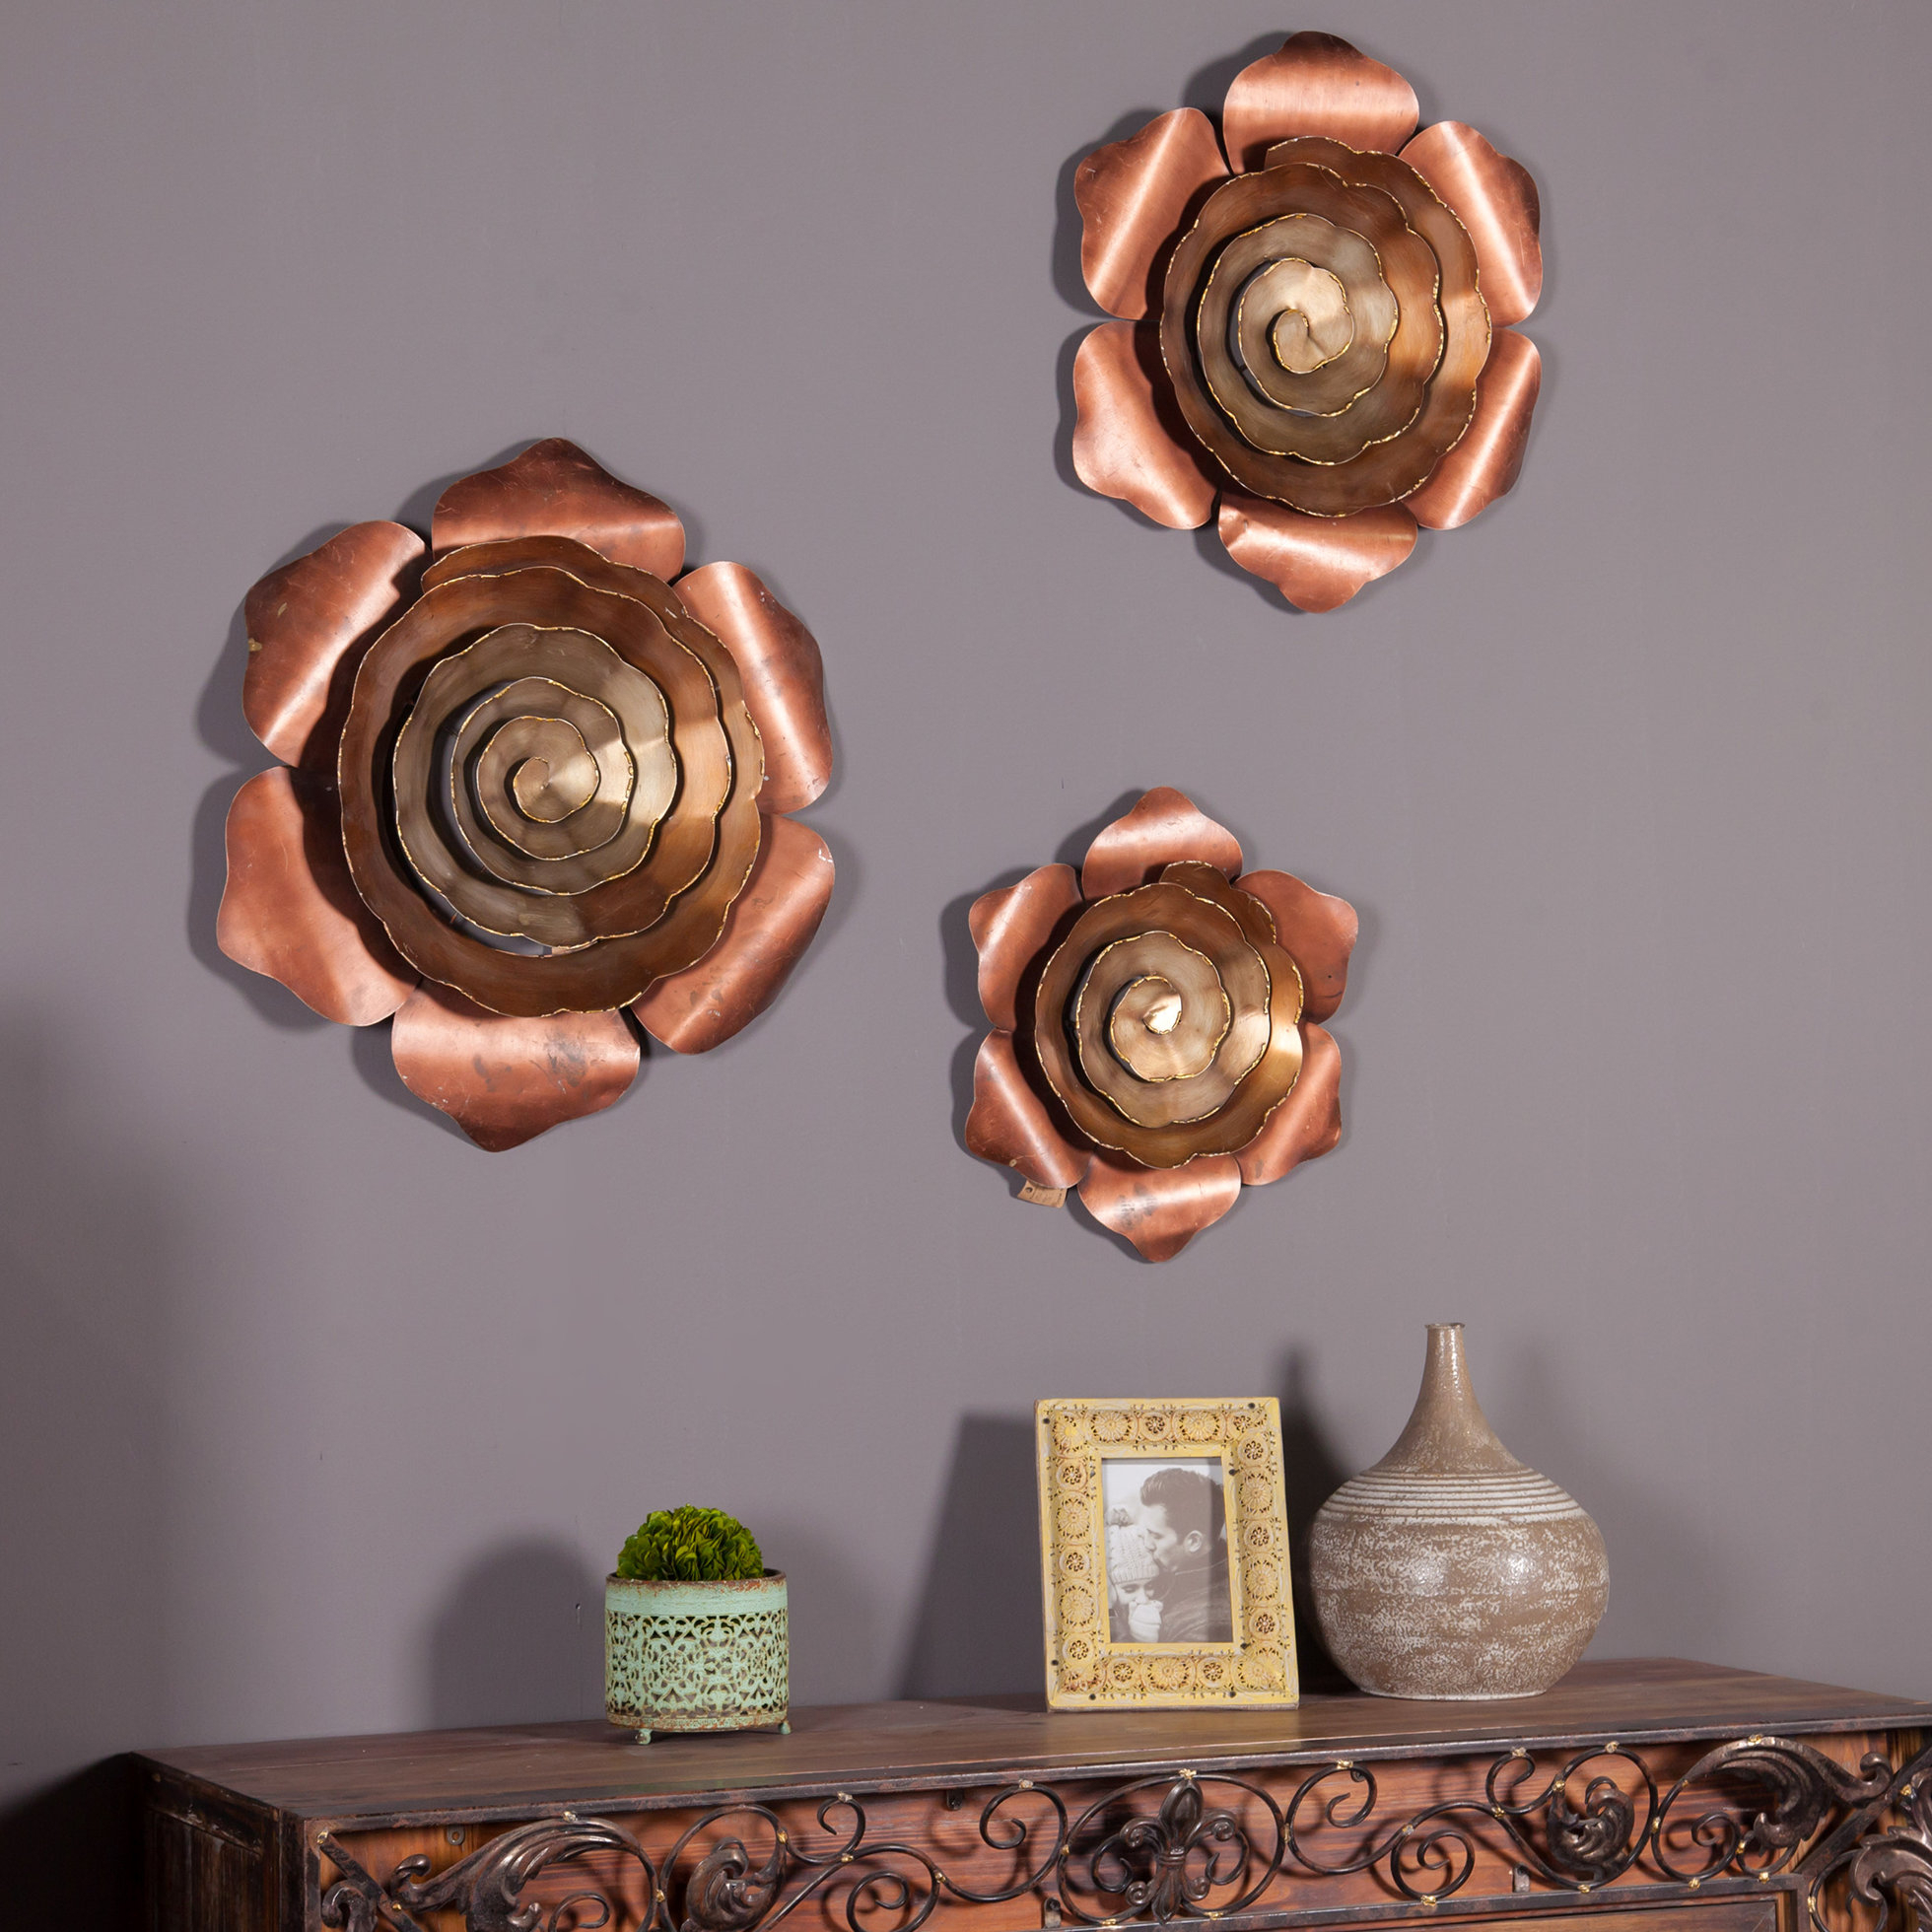 3 Piece Wall Decor Set | Wayfair with regard to 3 Piece Ceramic Flowers Wall Decor Sets (Image 8 of 30)